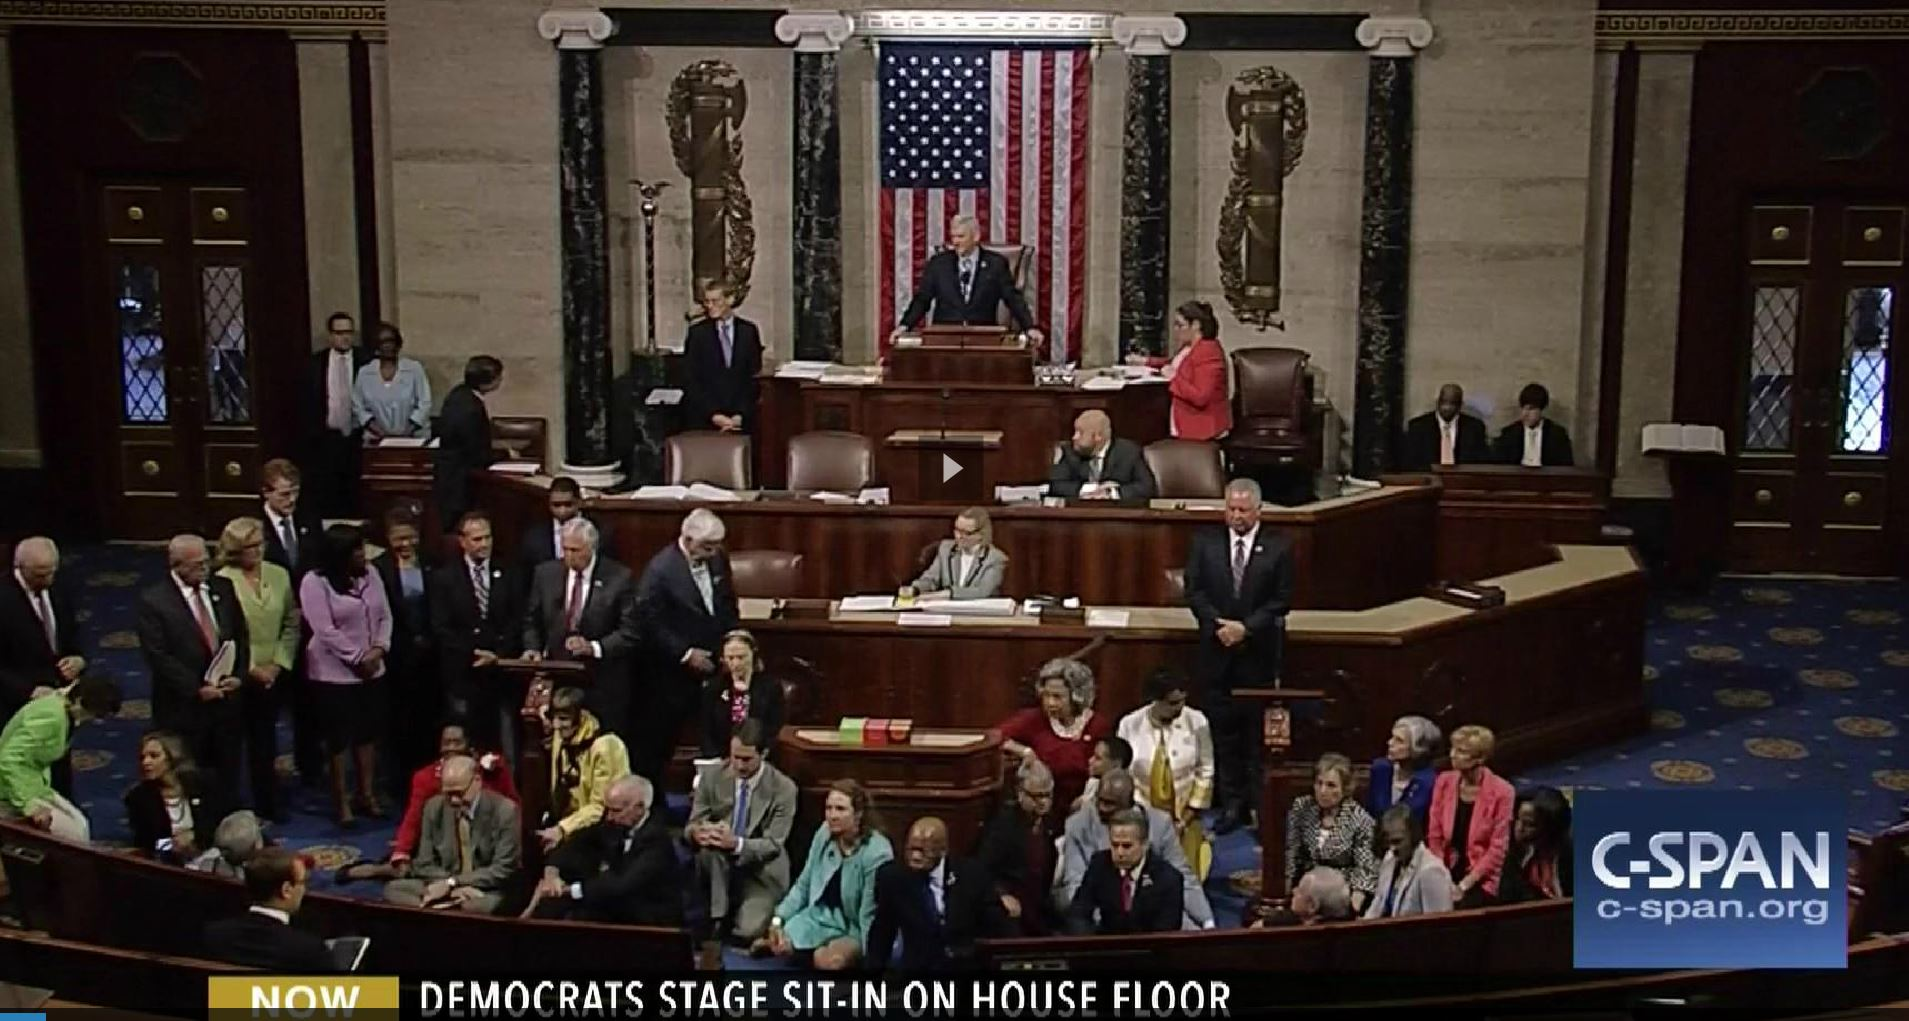 Democrats stage sit-in on House Floore_302781